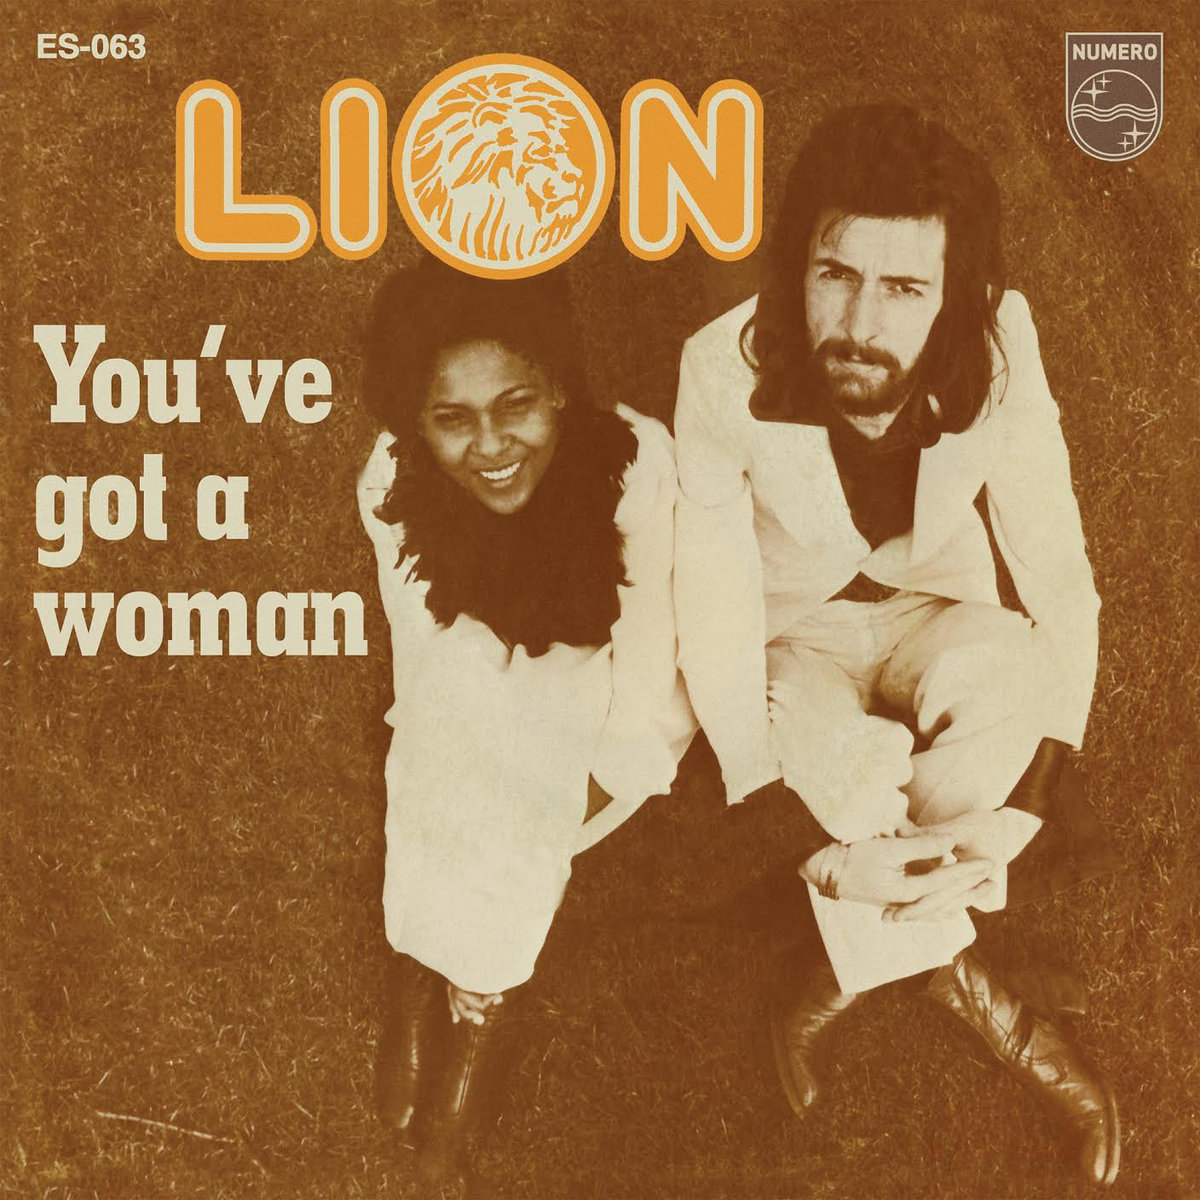 SONG OF THE DAY Lion – You've Got a Woman | The Listening Post a